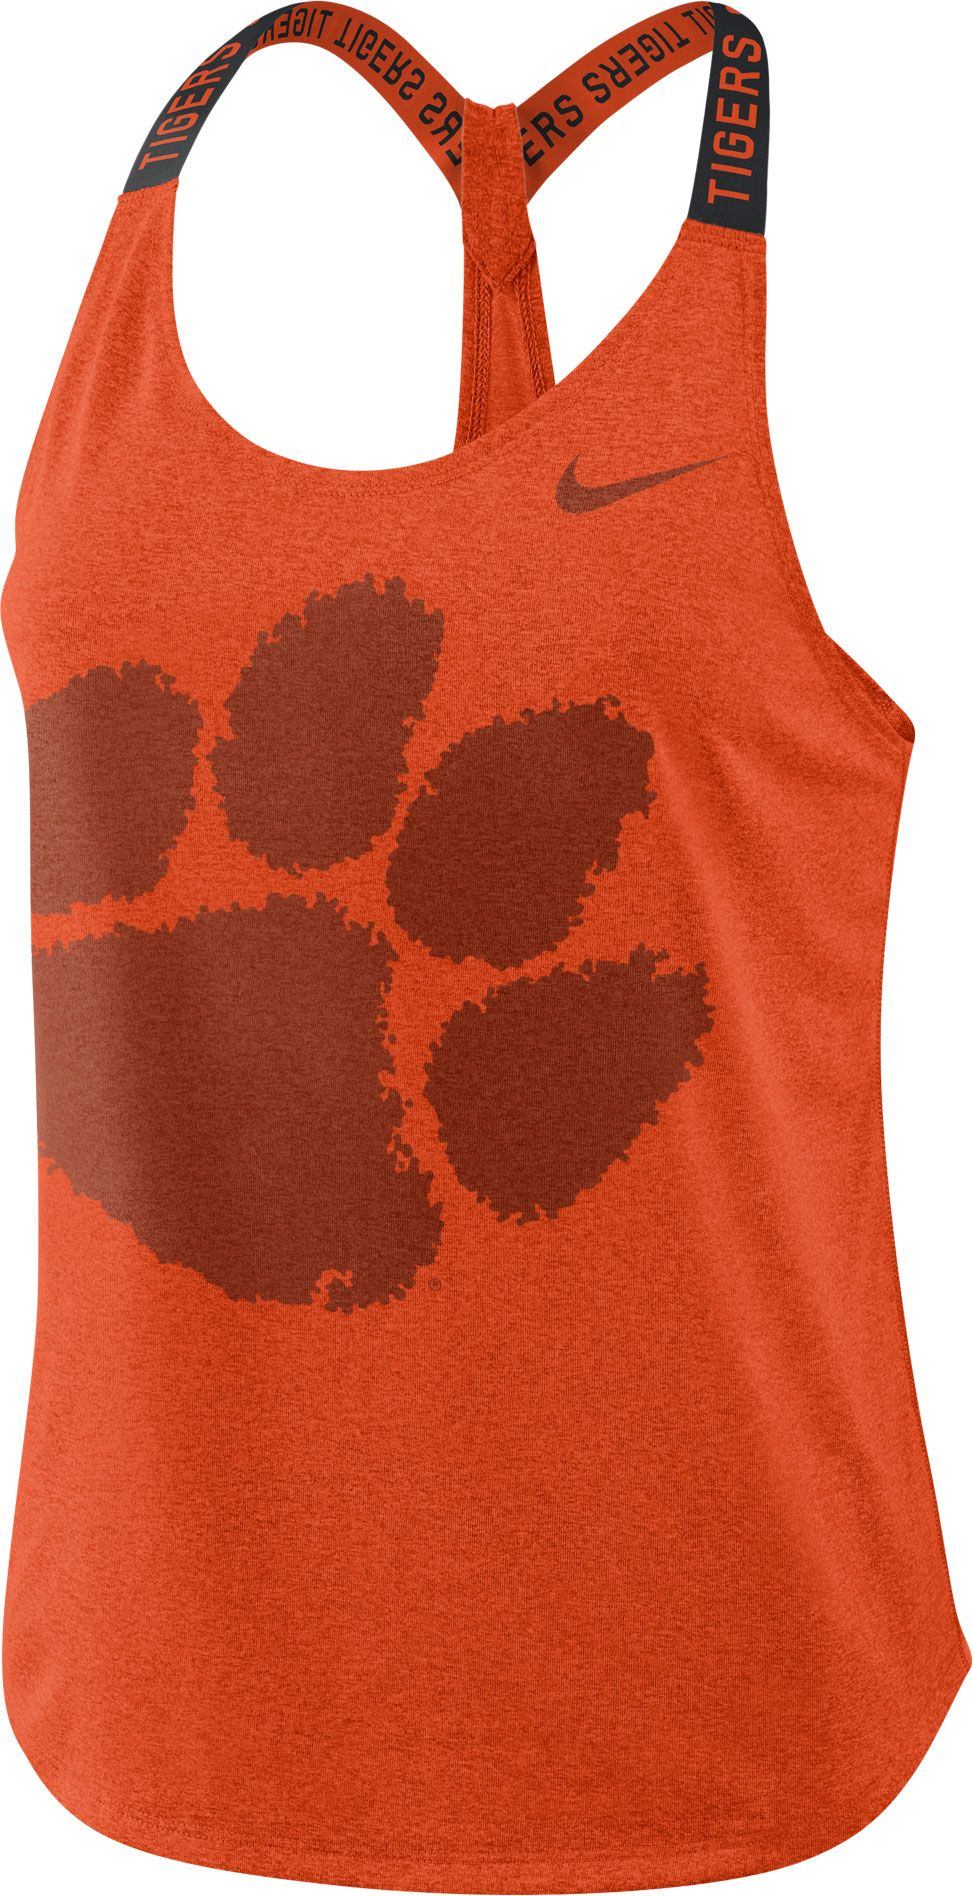 Nike Women's Clemson Tigers Orange Dri Fit Elastika Tank Top by Nike